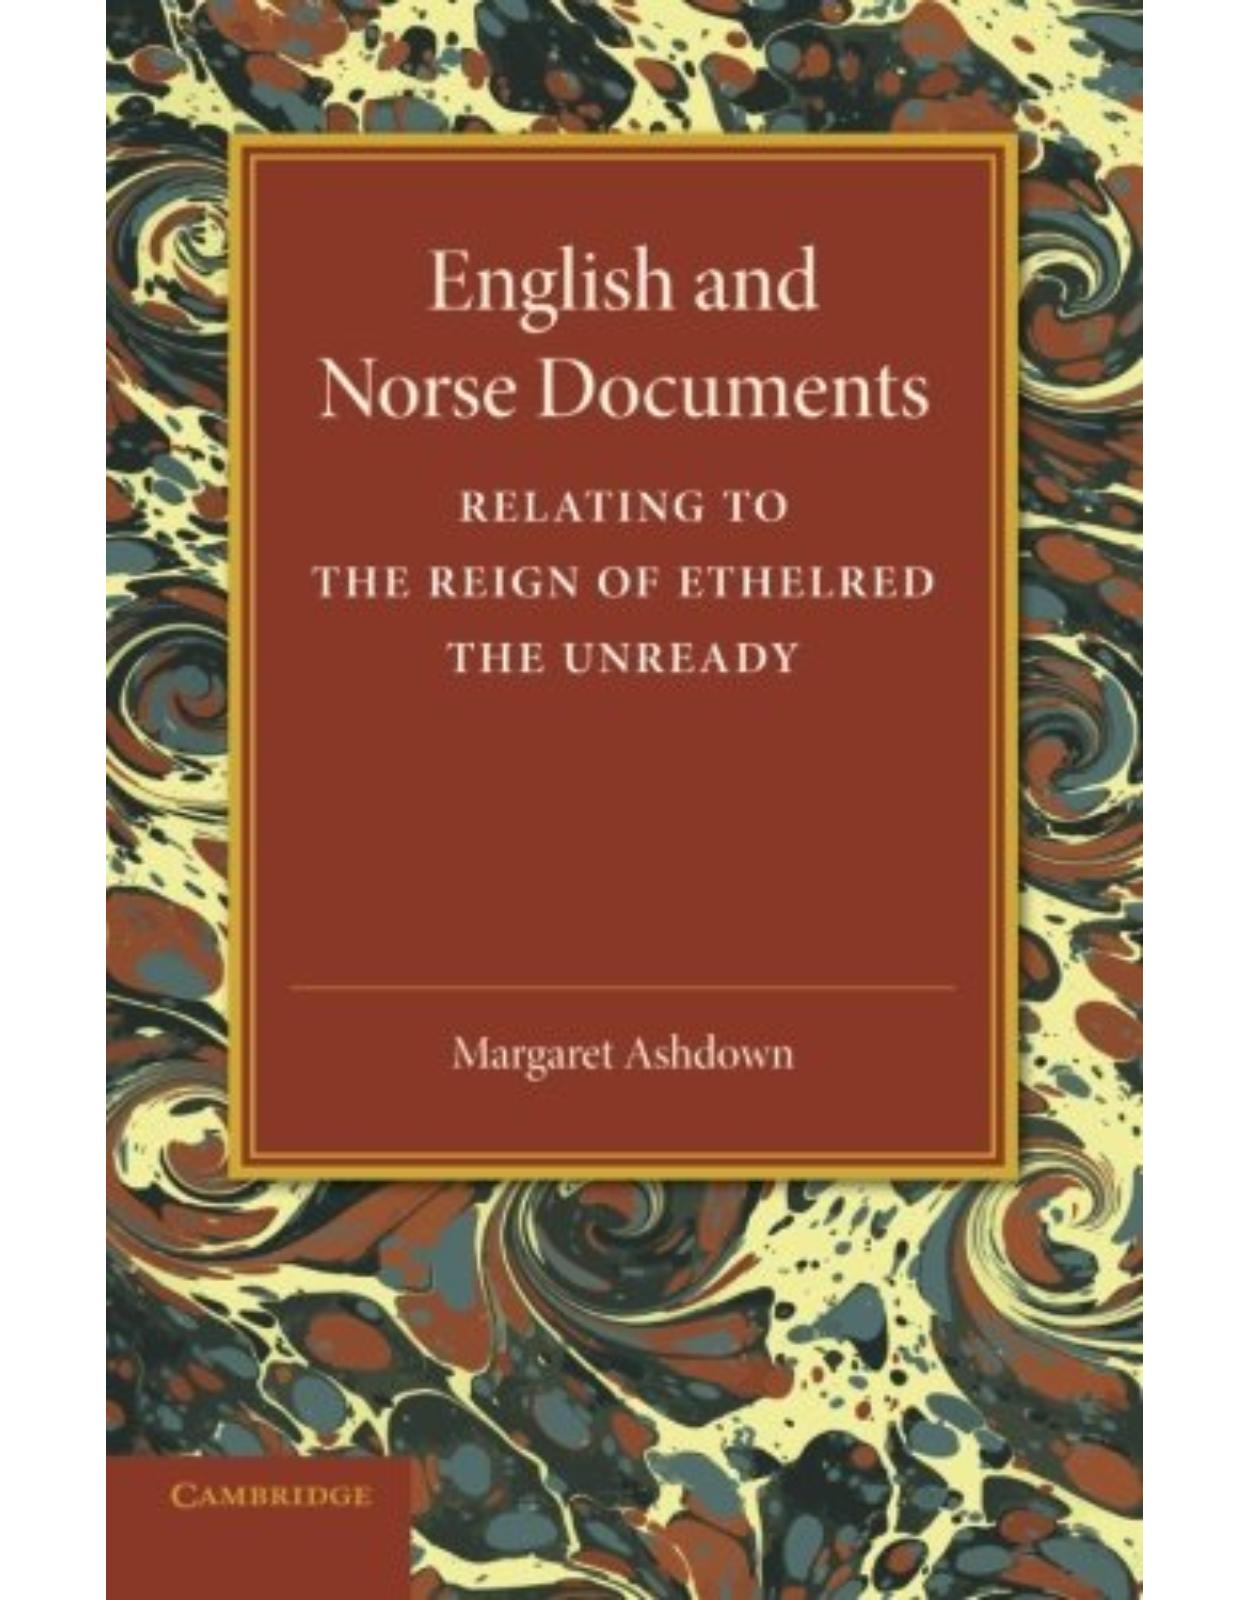 English and Norse Documents: Relating to the Reign of Ethelred the Unready